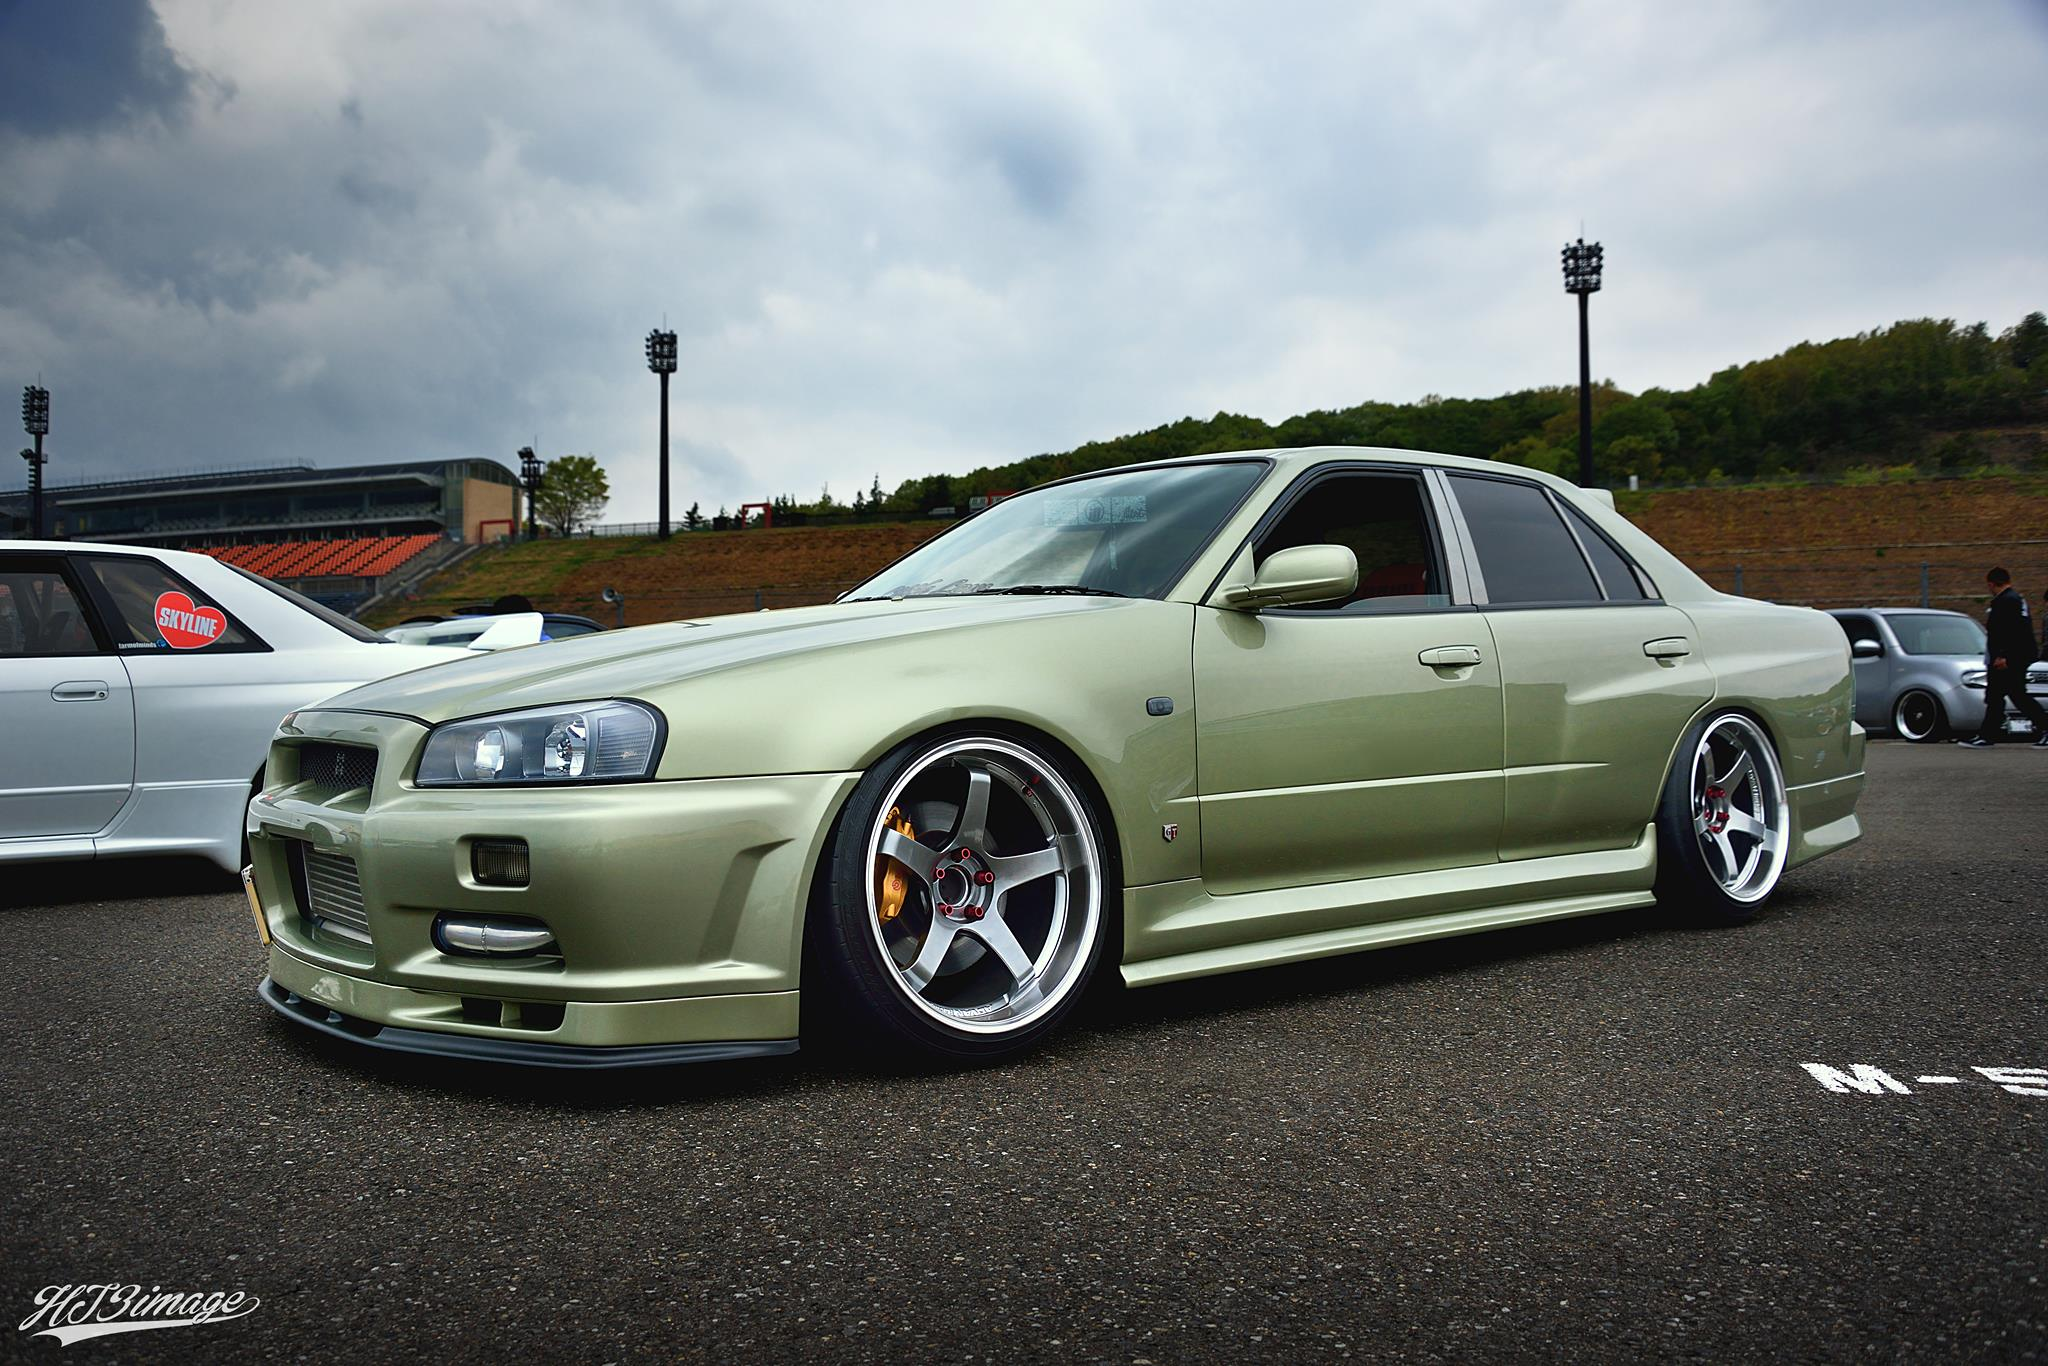 Nissan Skyline Gtr R34 For Sale >> Four door R34.. | StanceNation™ // Form > Function